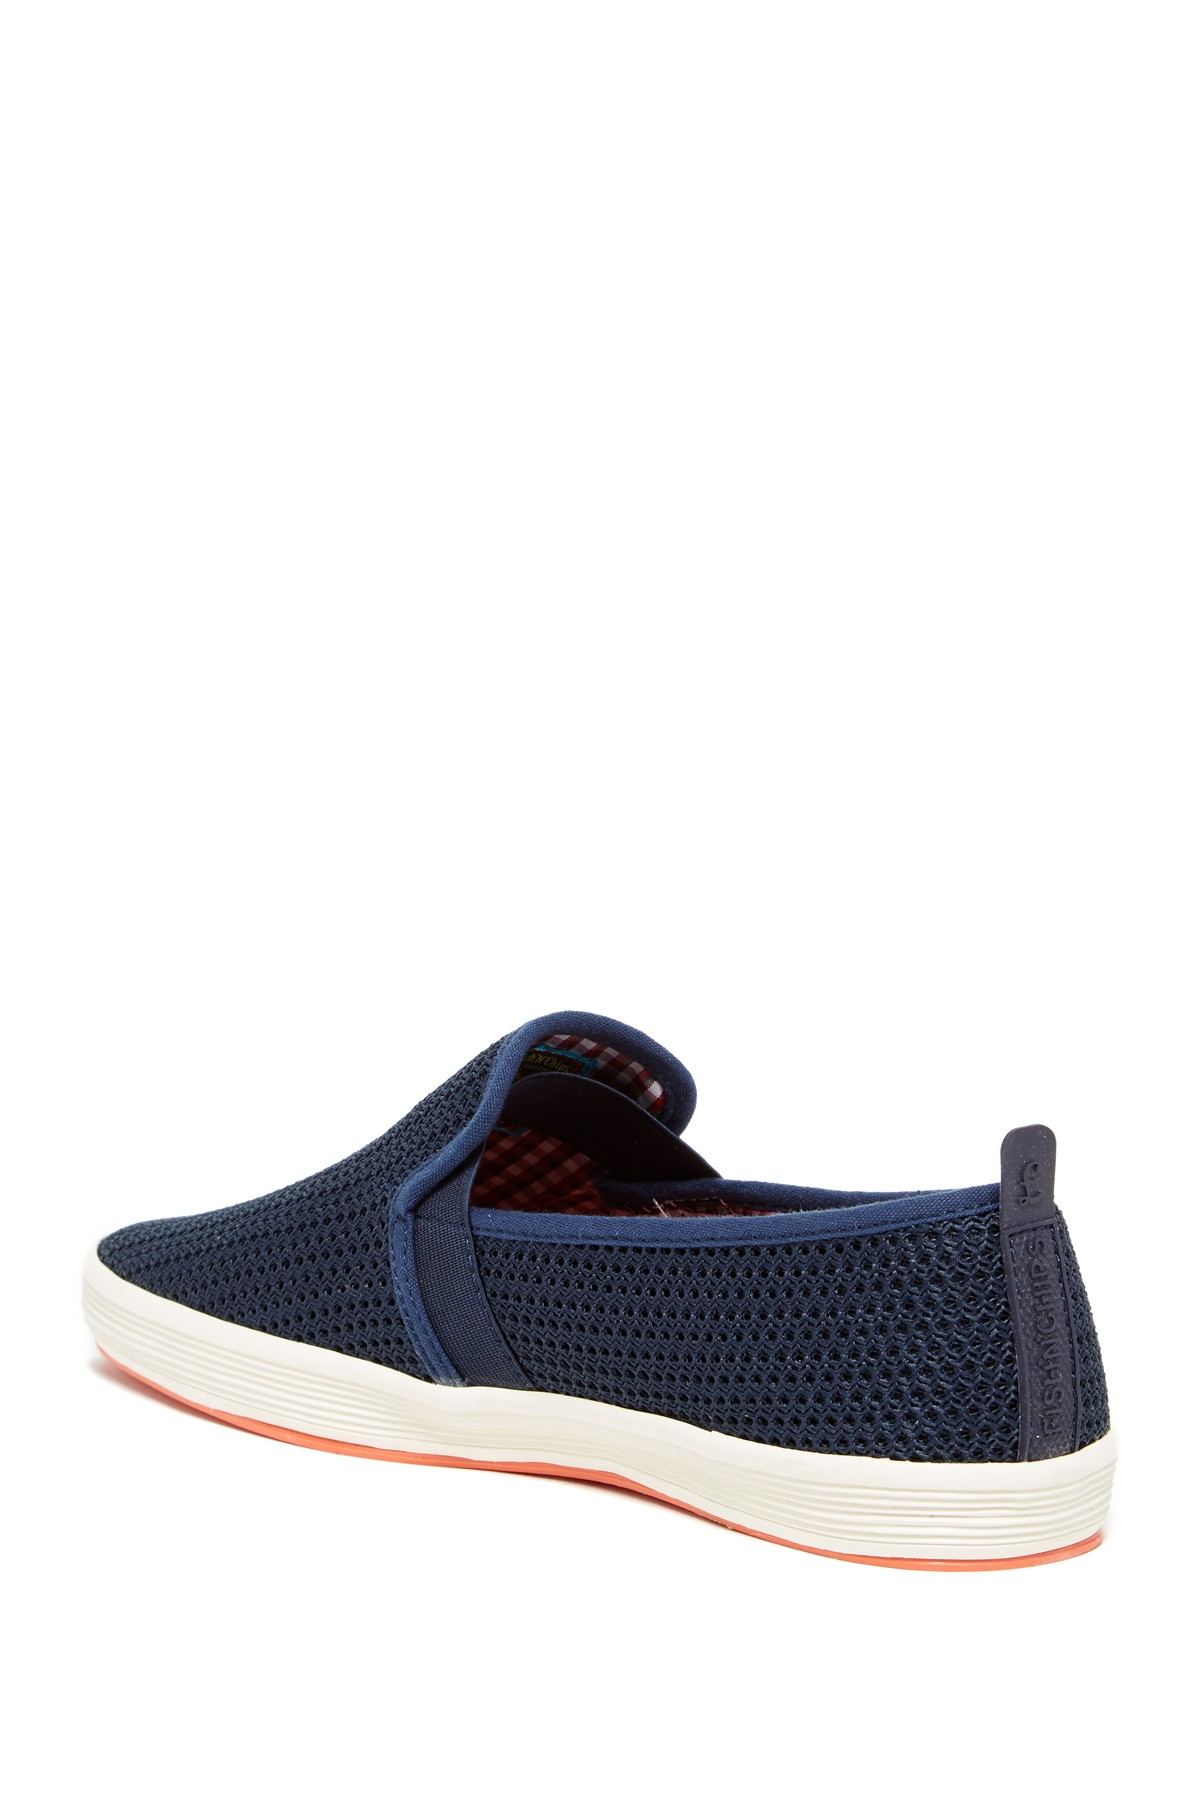 Fish n chips fry 2 mesh slip on in blue for men lyst for Fish and chips shoes